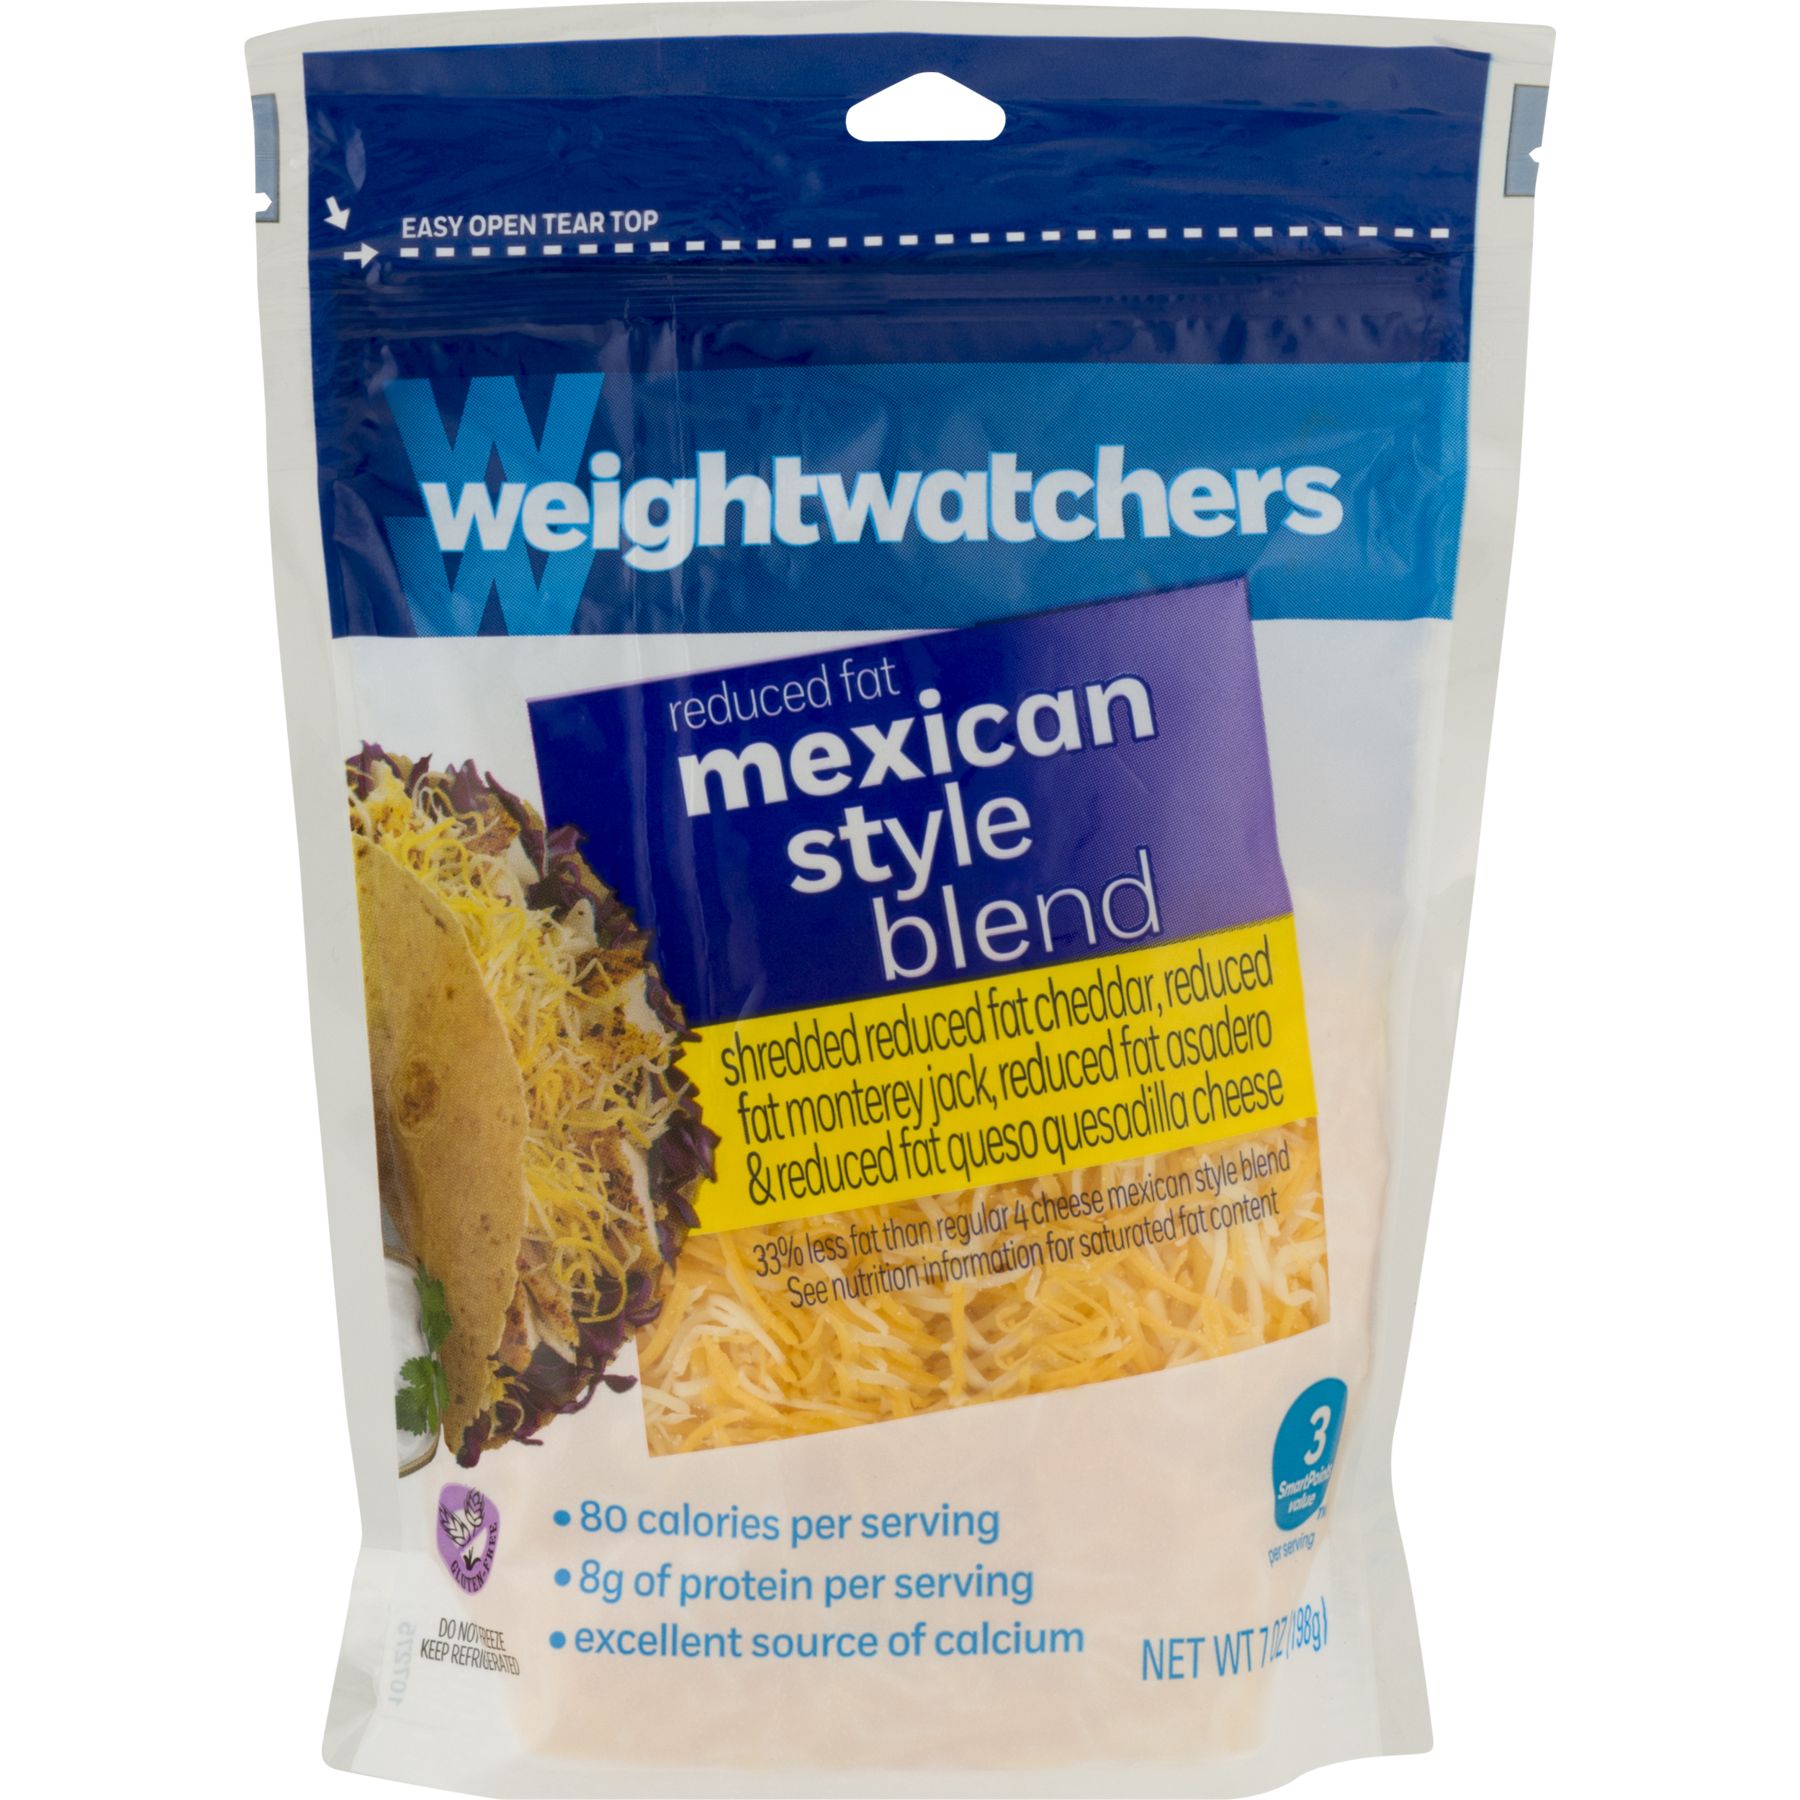 Fat mexican png. Weight watchers shredded cheese